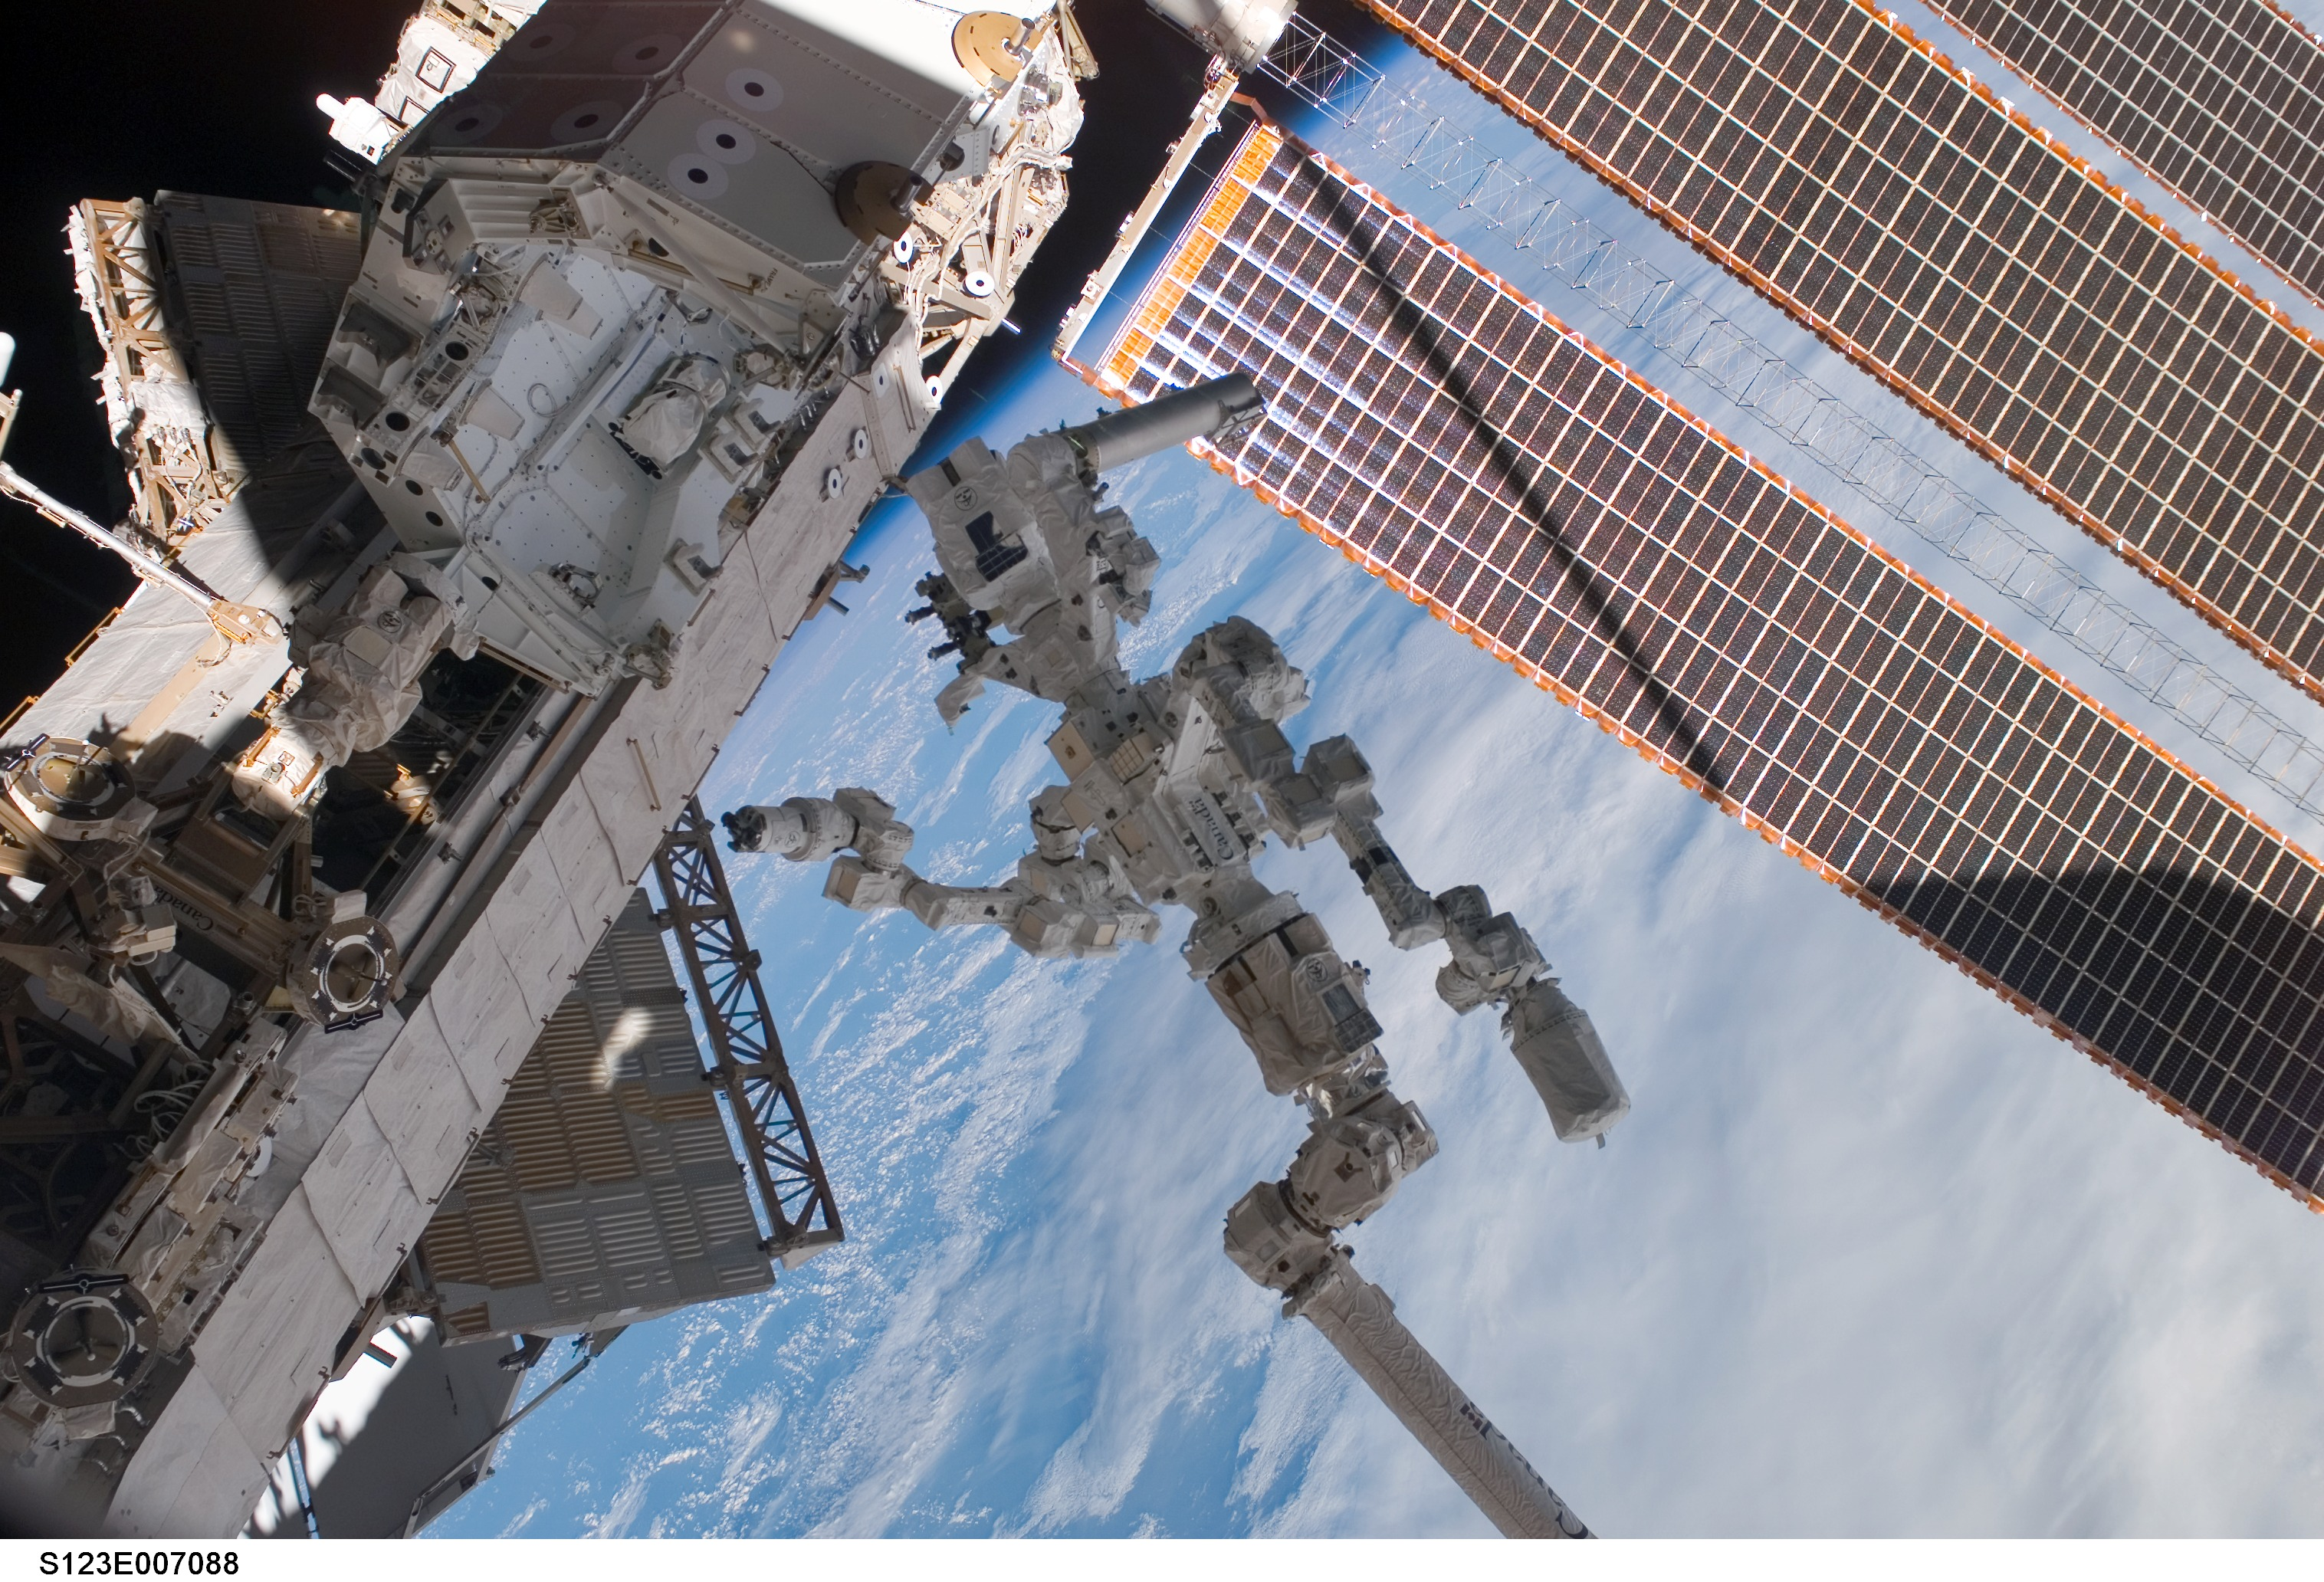 APOD: 2008 April 1- New Space Station Robot Asks to be Called Dextre the Magnificent